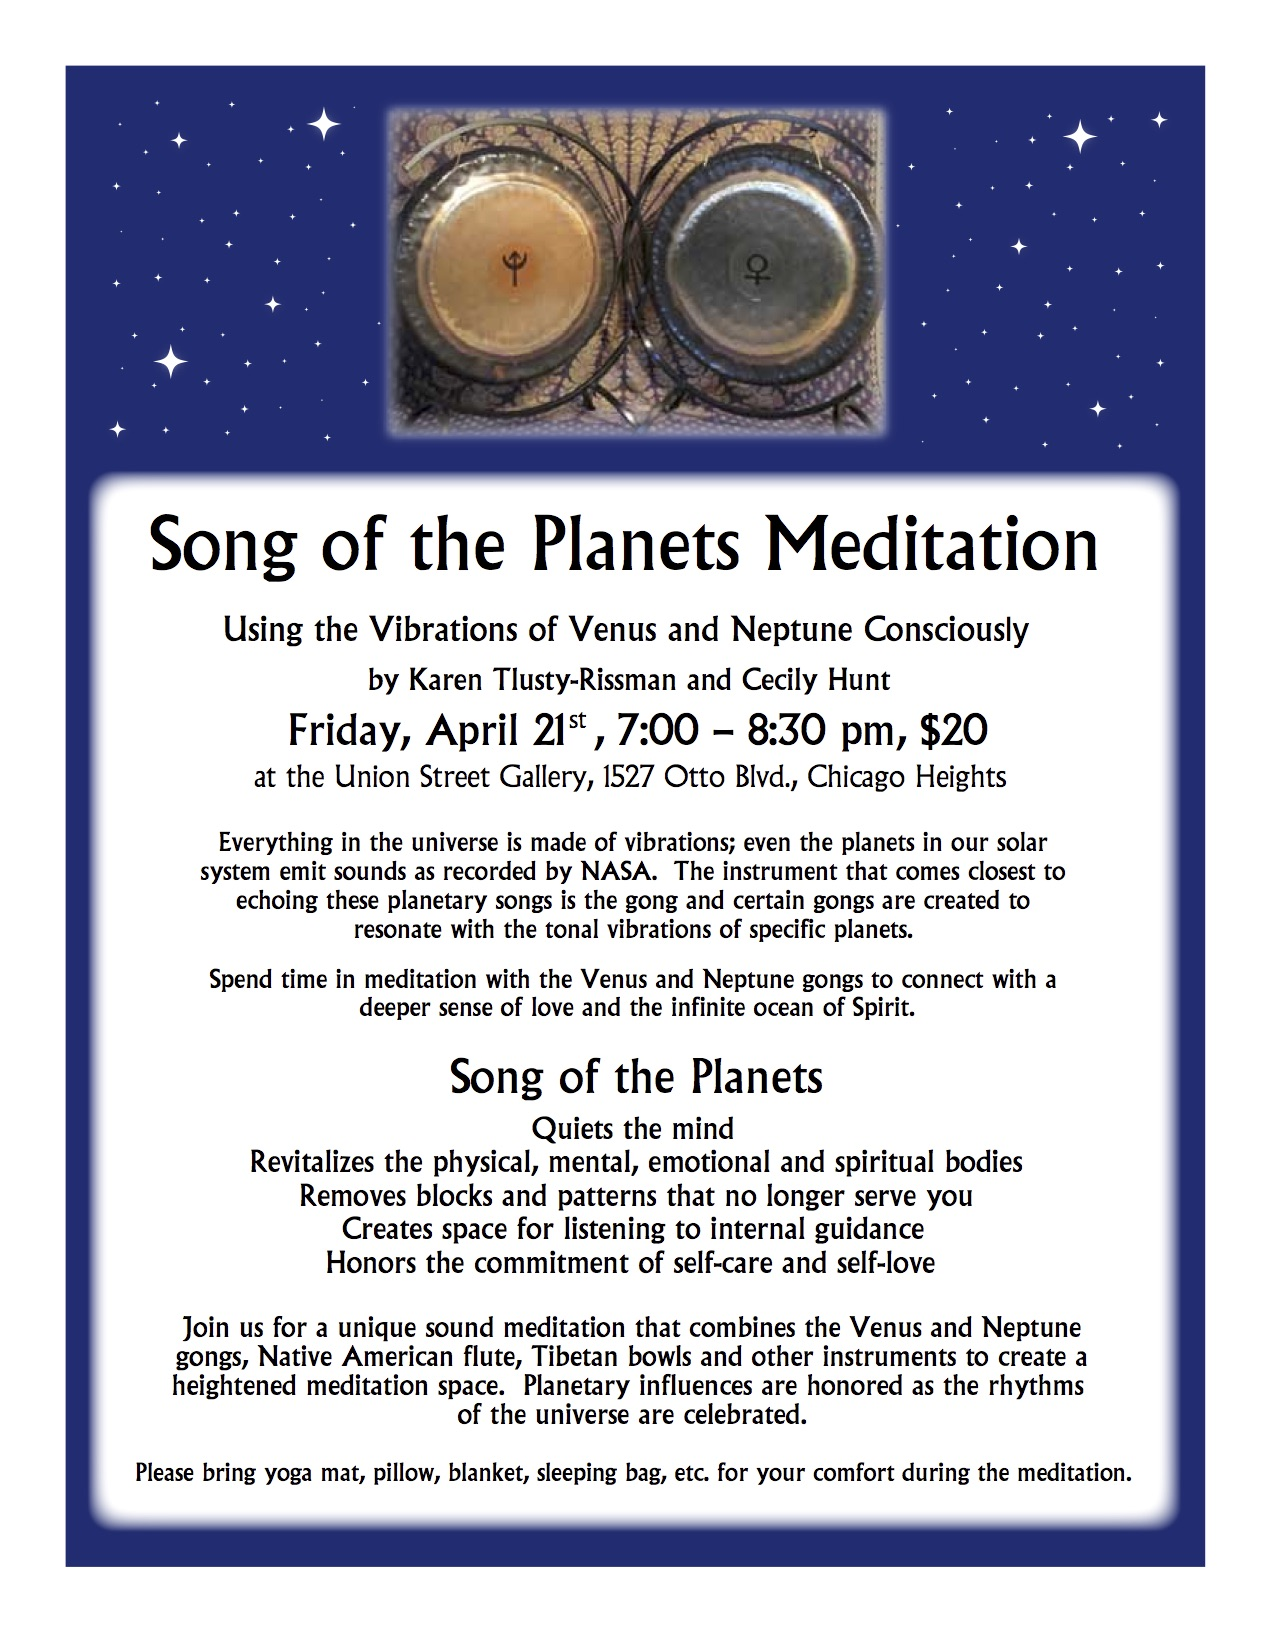 Song of the Planets Meditation $20 — Union Street Gallery